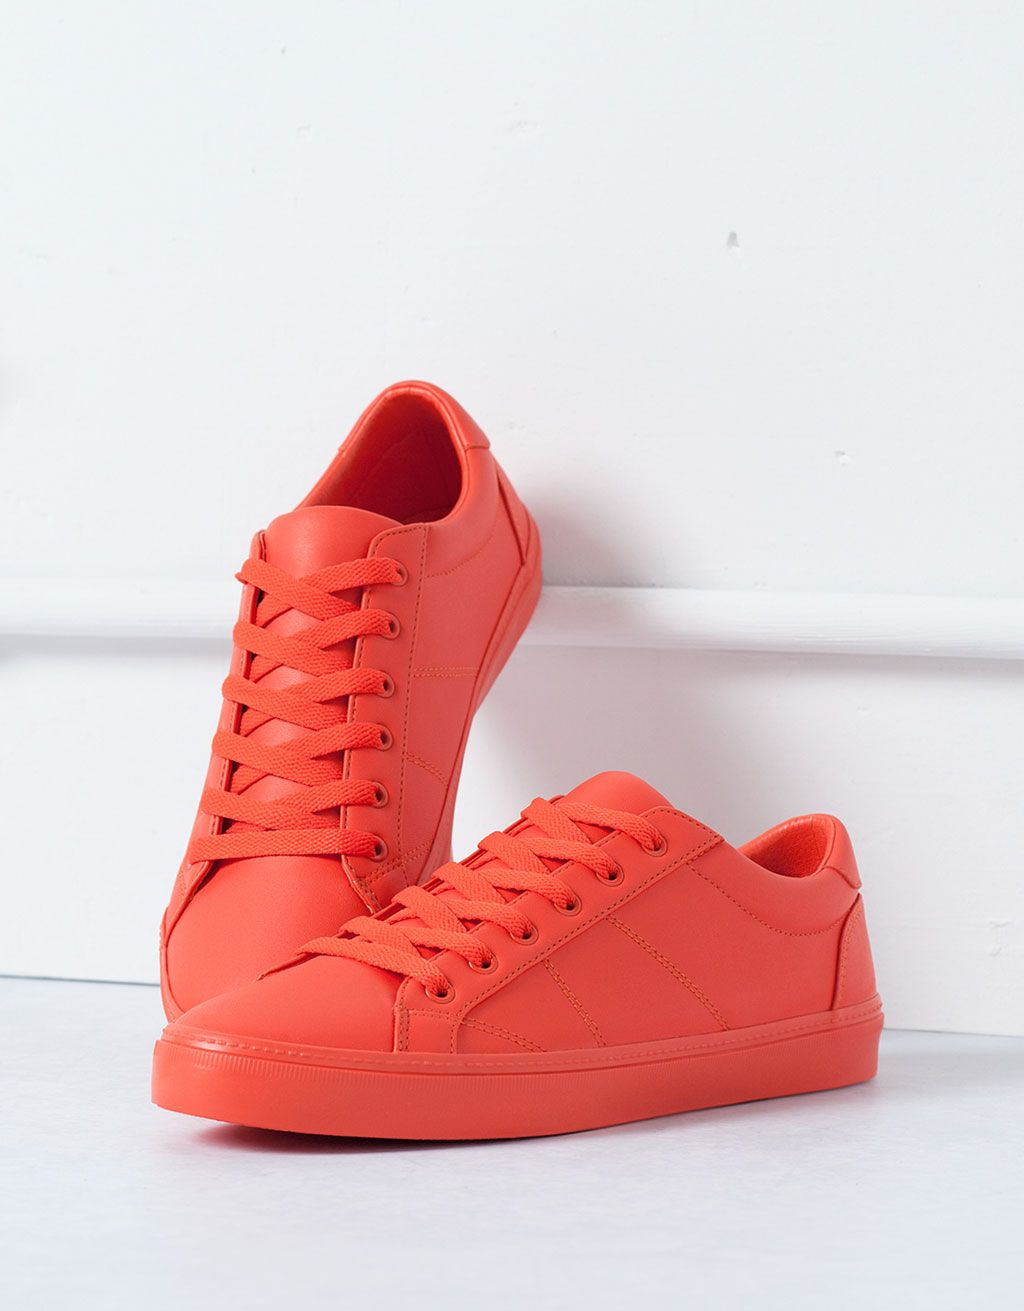 Bershka Colombia - One-colour sneakers 24a36d3a5